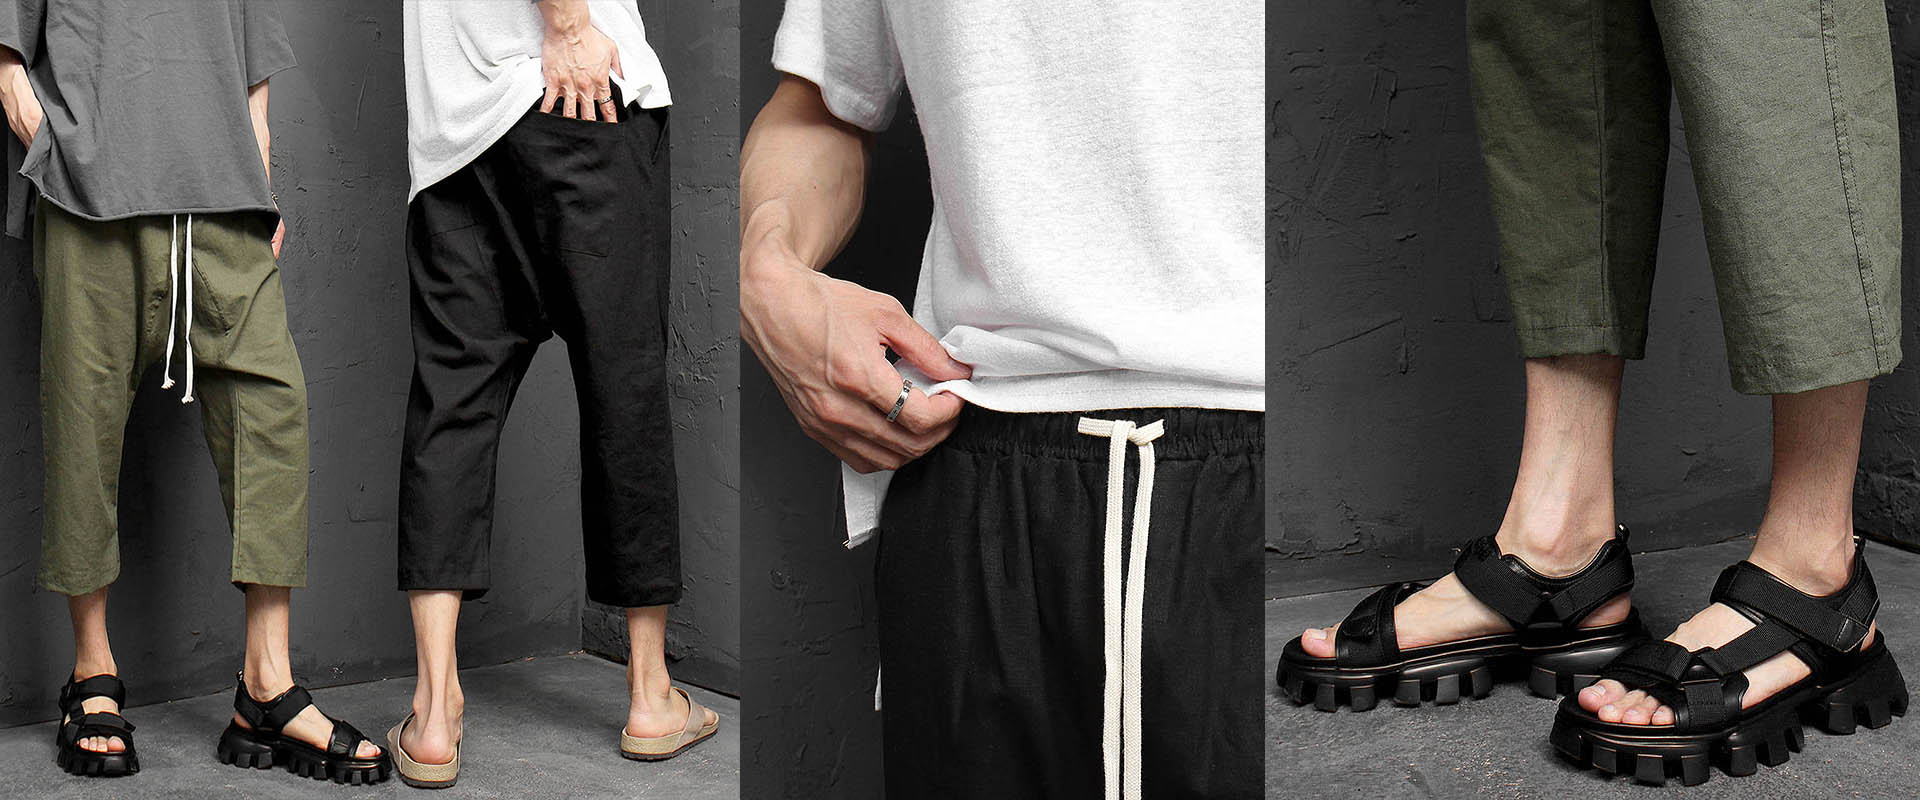 Drop Crotch 4/5 Baggy Color Linen Sweatpants 075